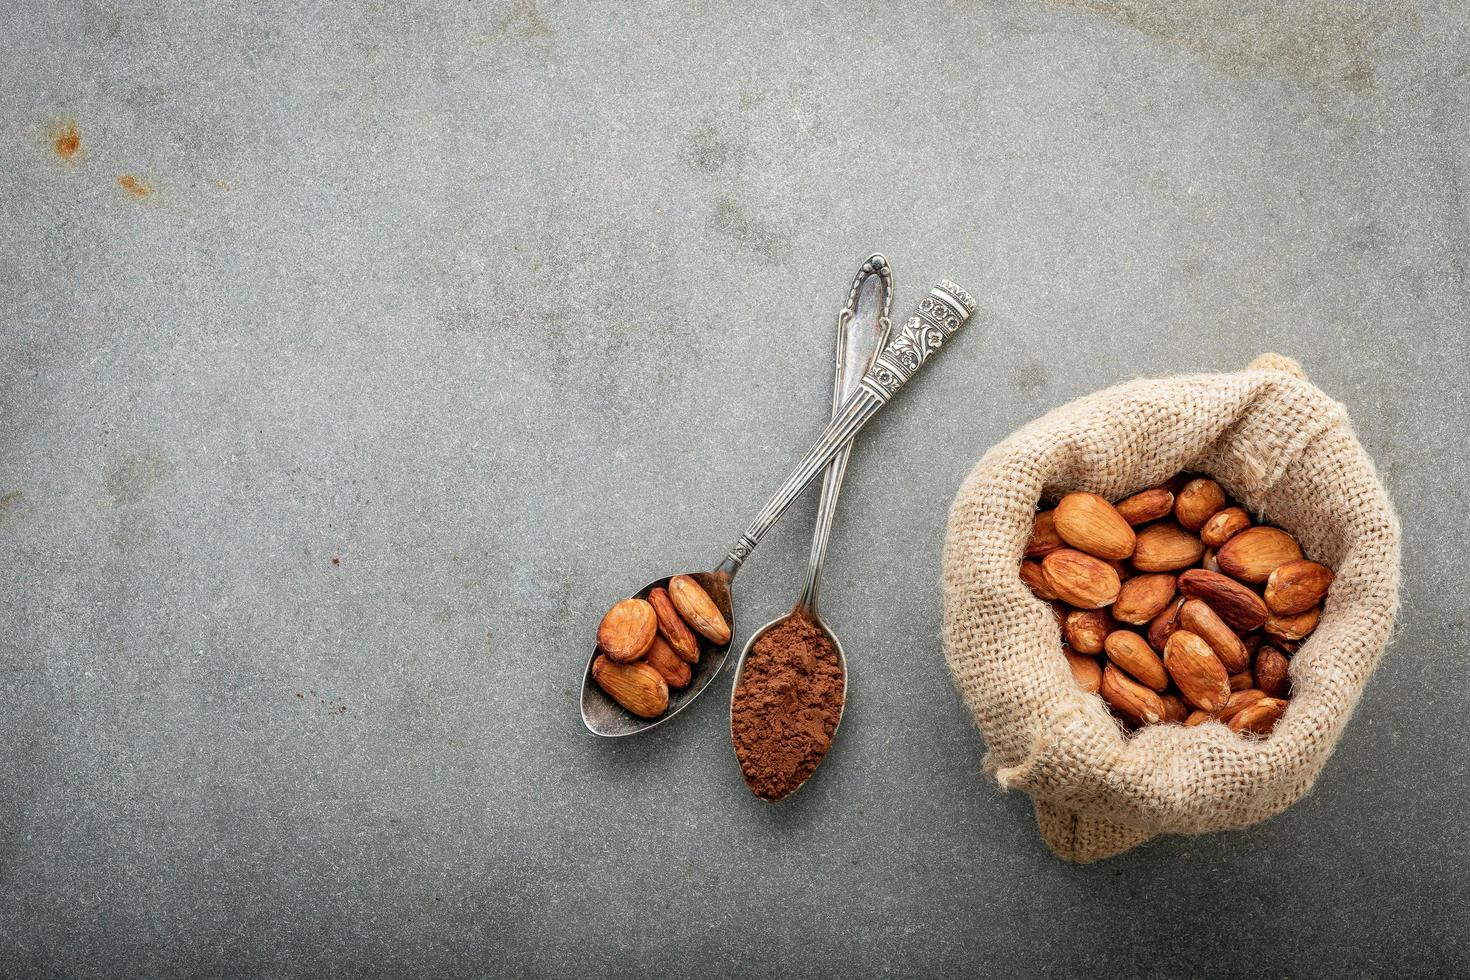 Cacao beans on concrete background photo